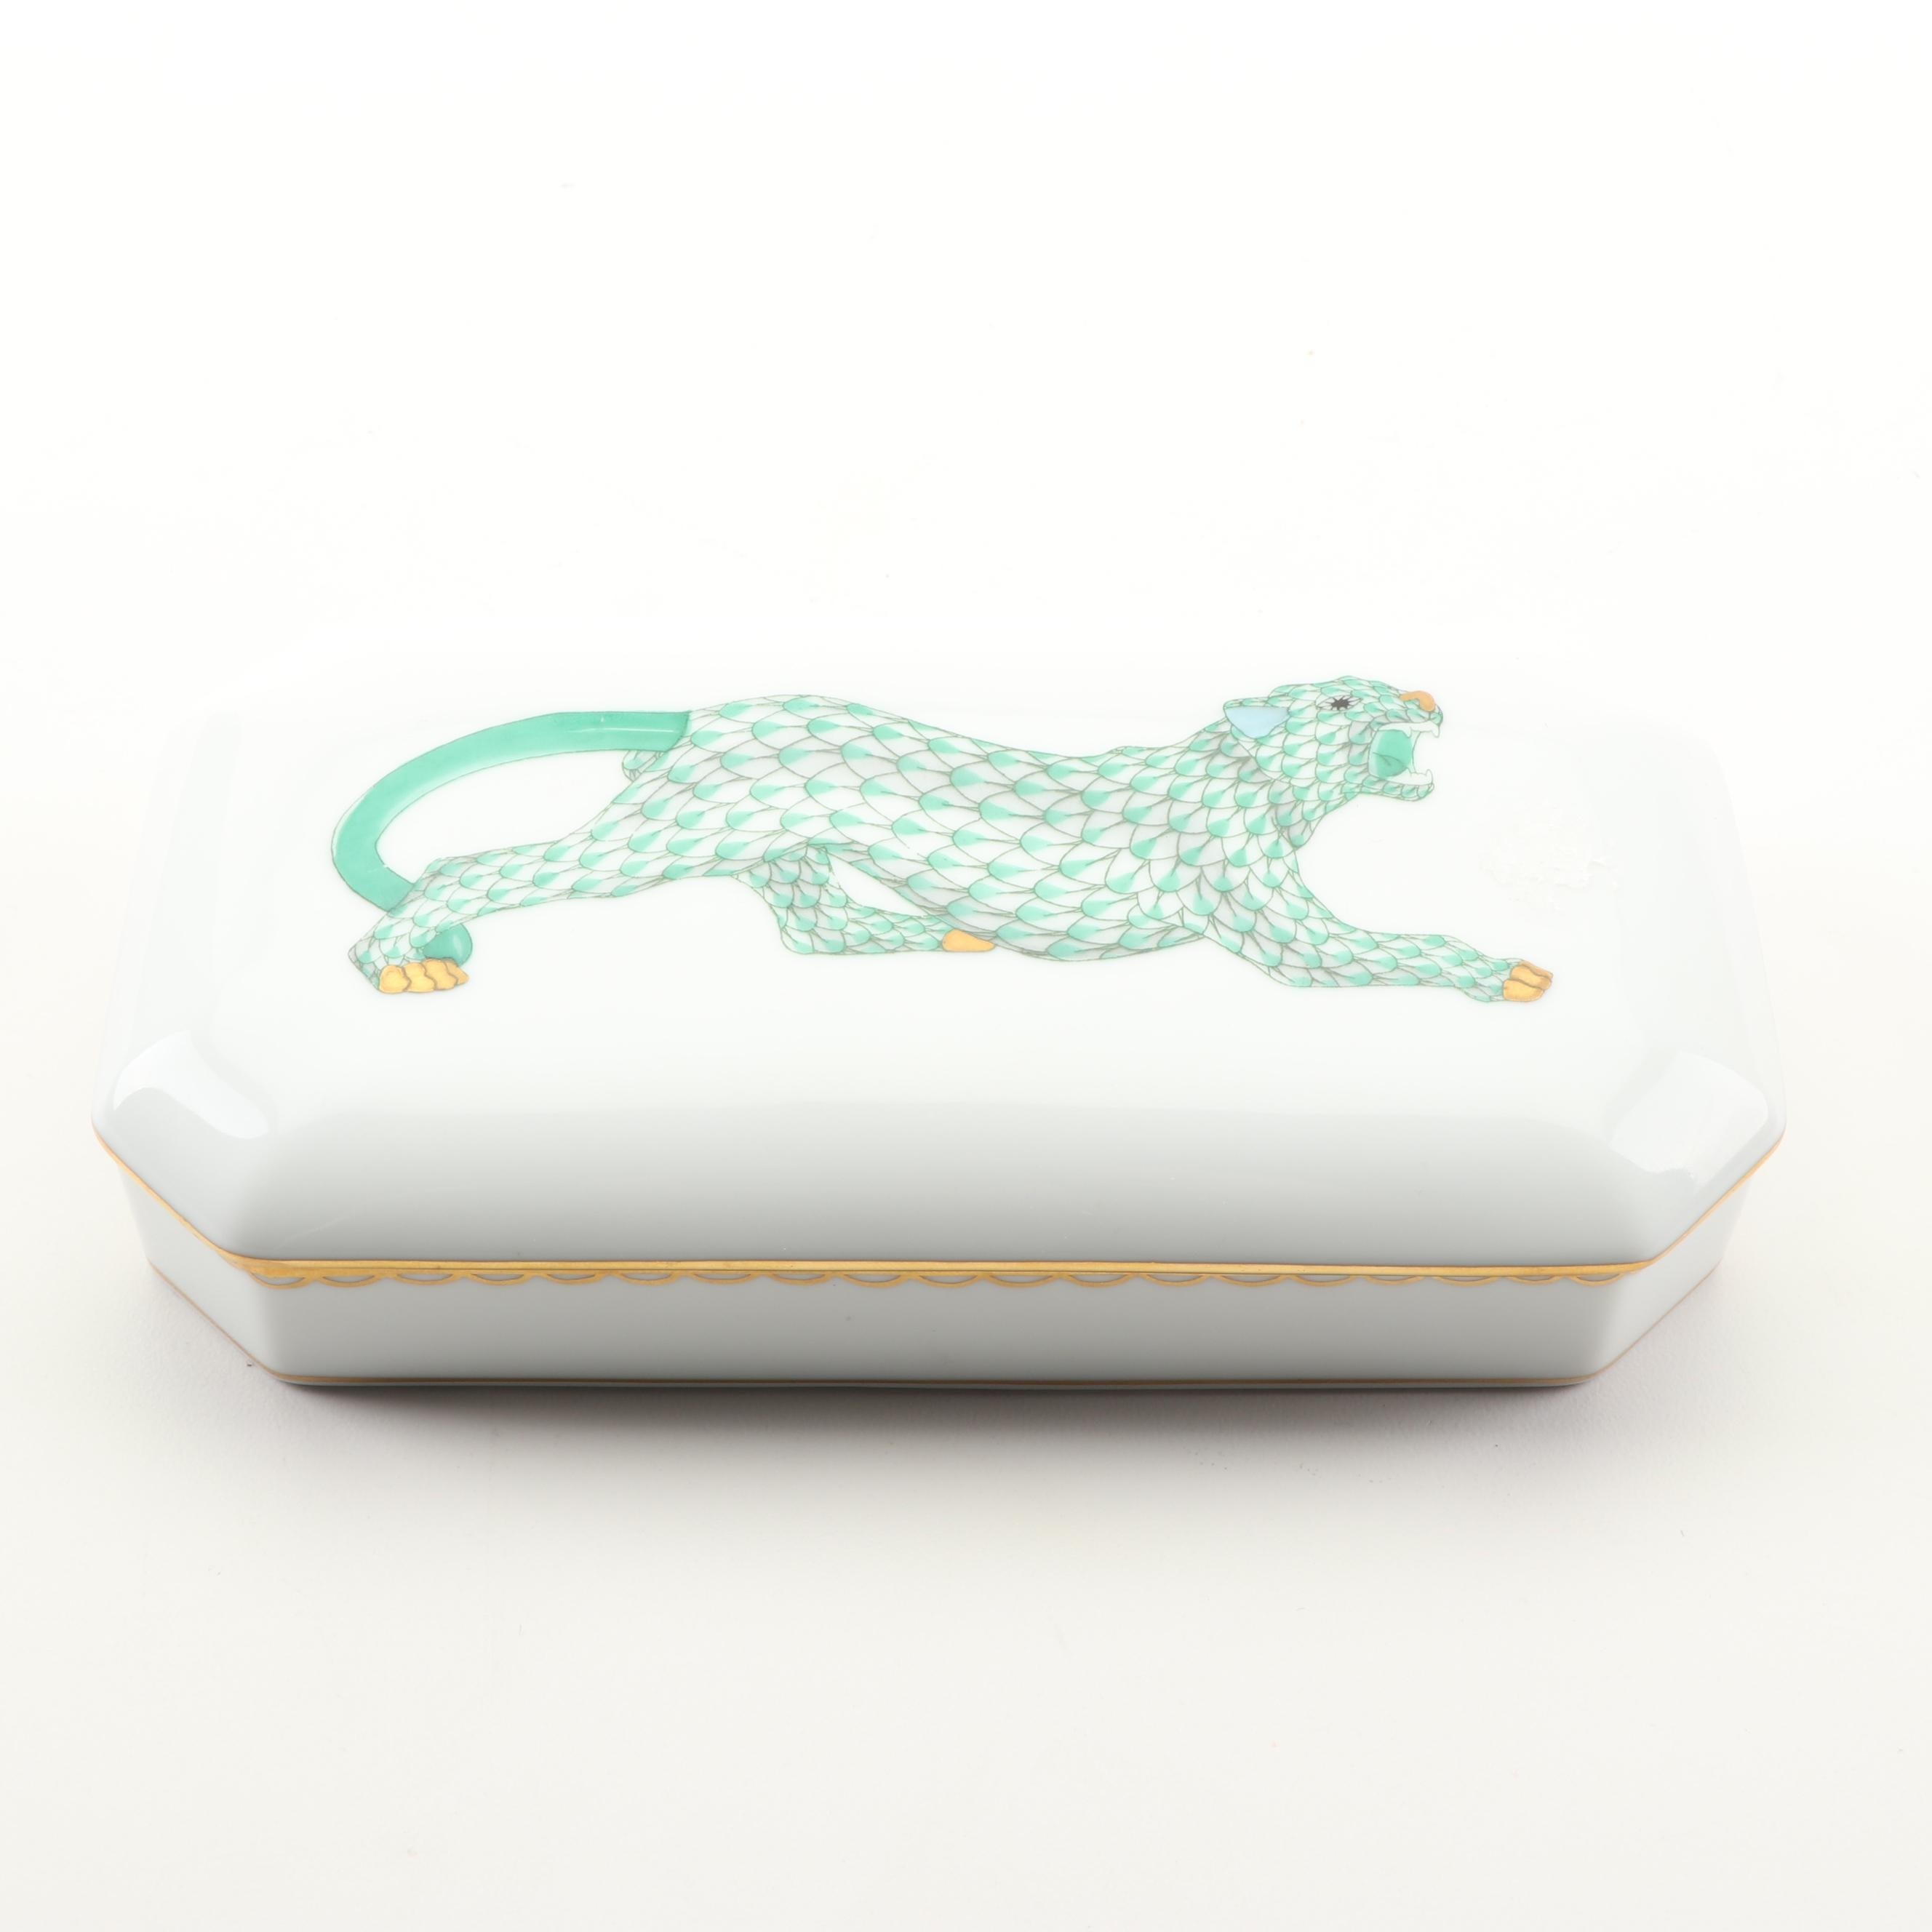 Herend Hungary First Edition Hand-Painted Porcelain Leopard Trinket Box